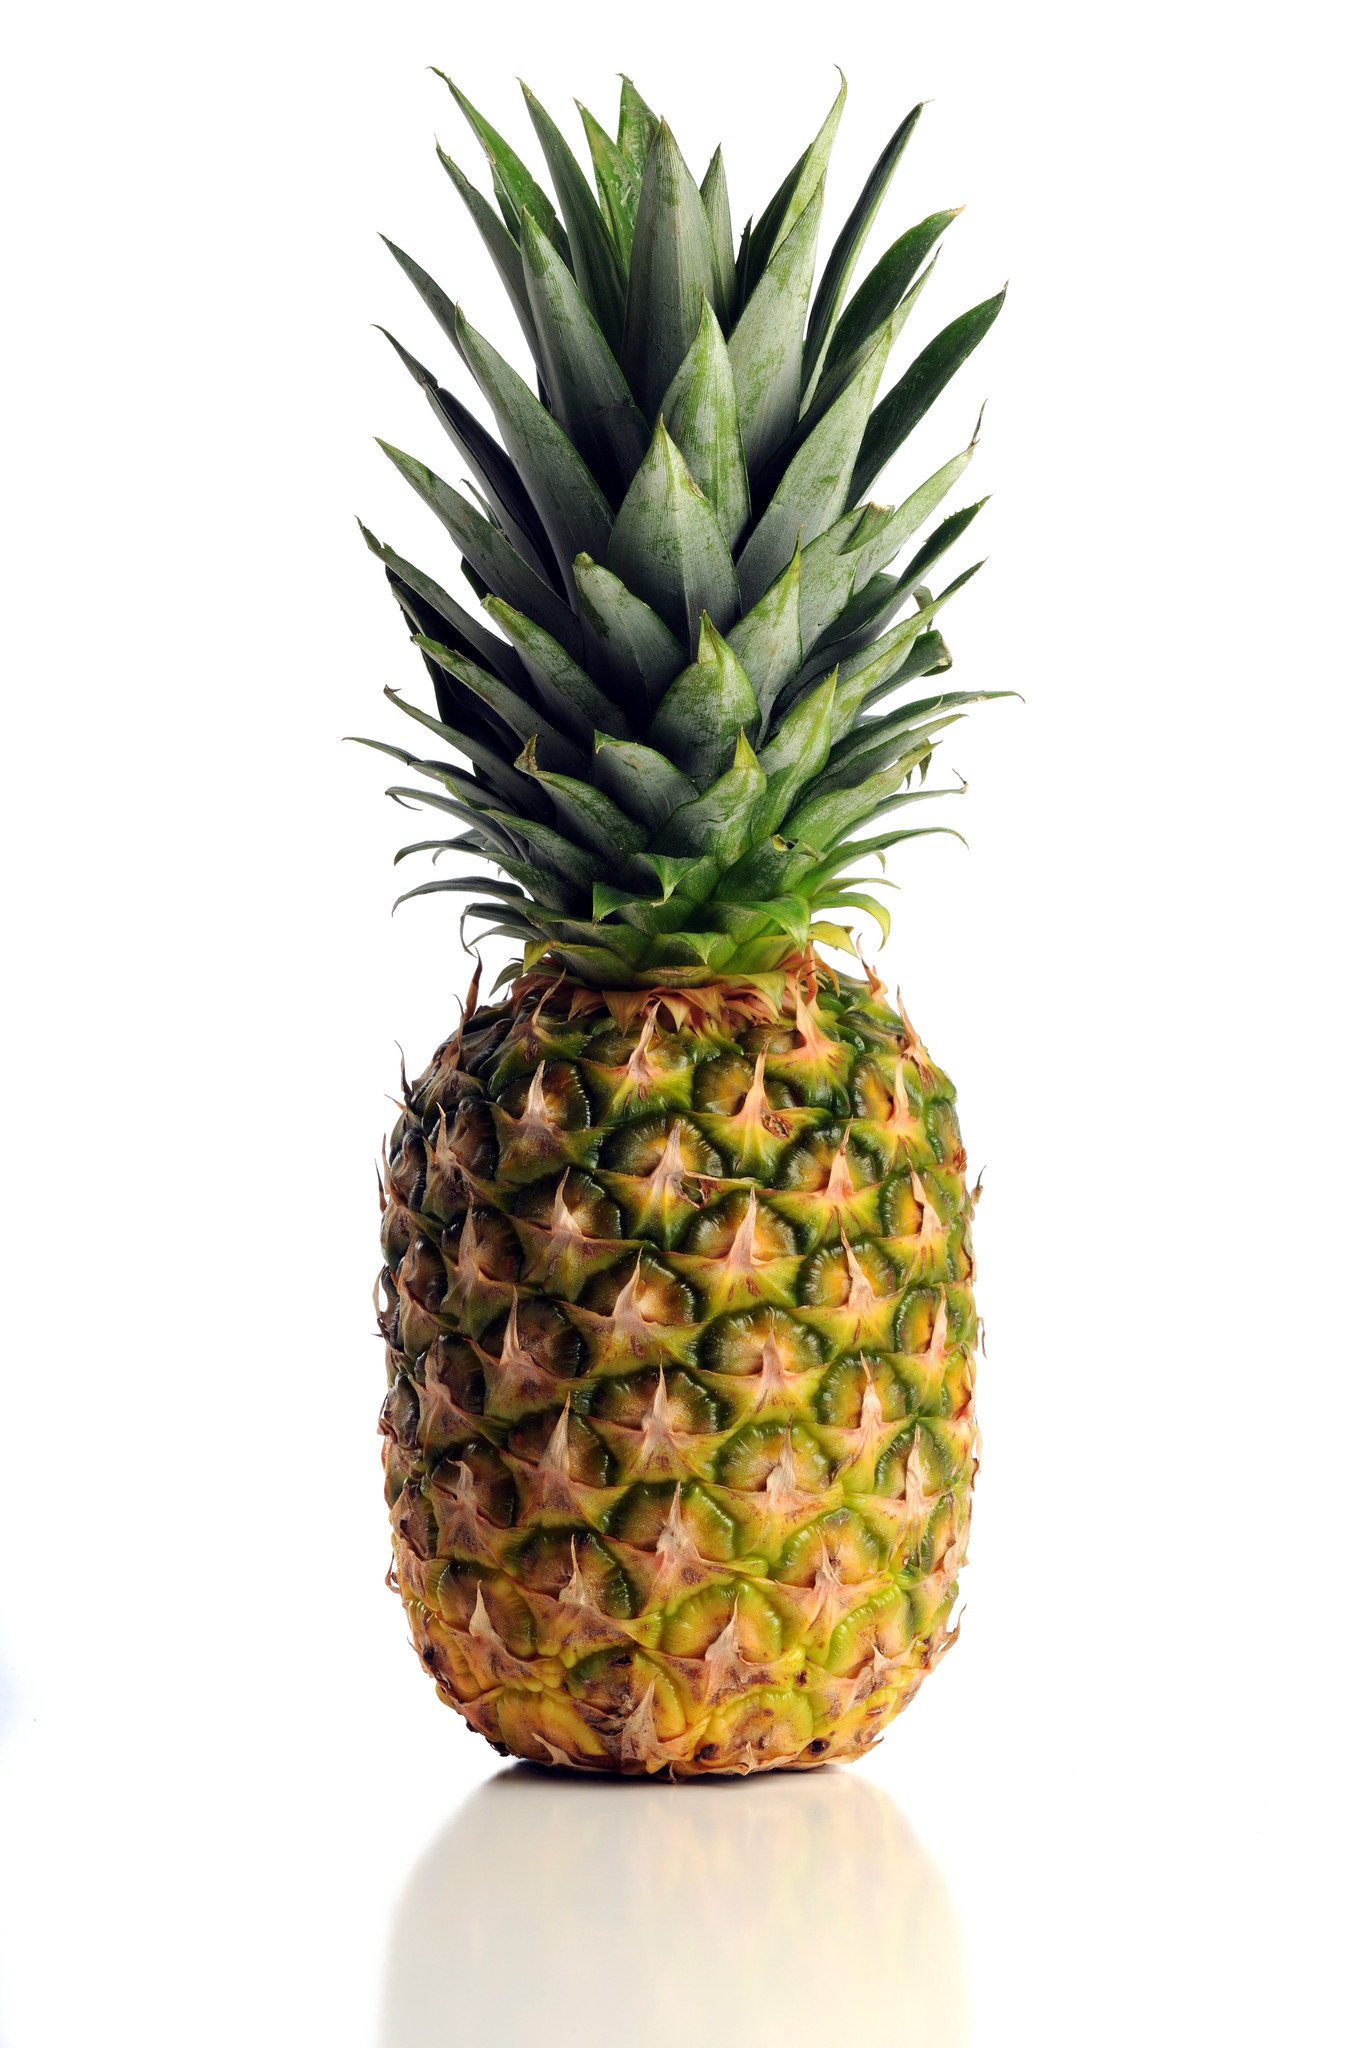 Pineapple from Bromeliaceae Family